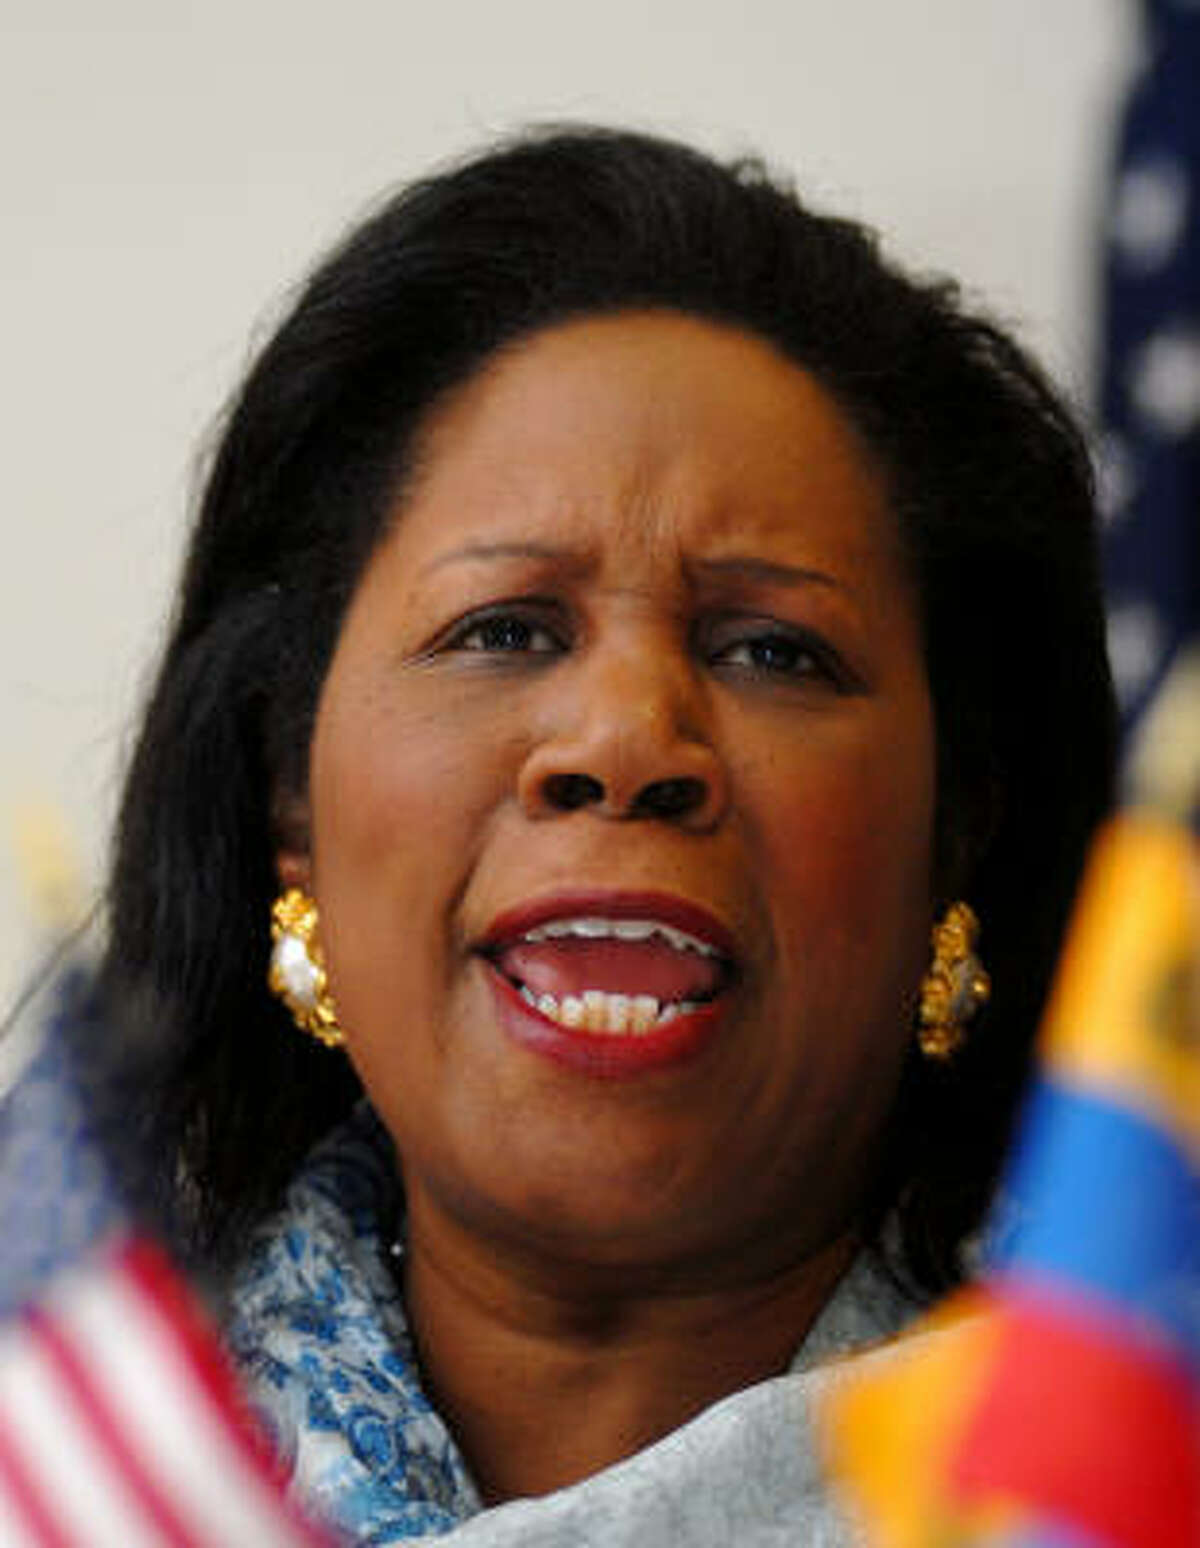 """""""Venezuela has many friends in this new Congress,"""" said Rep. Sheila Jackson Lee at the U.S. Embassy in Caracas on Wednesday."""